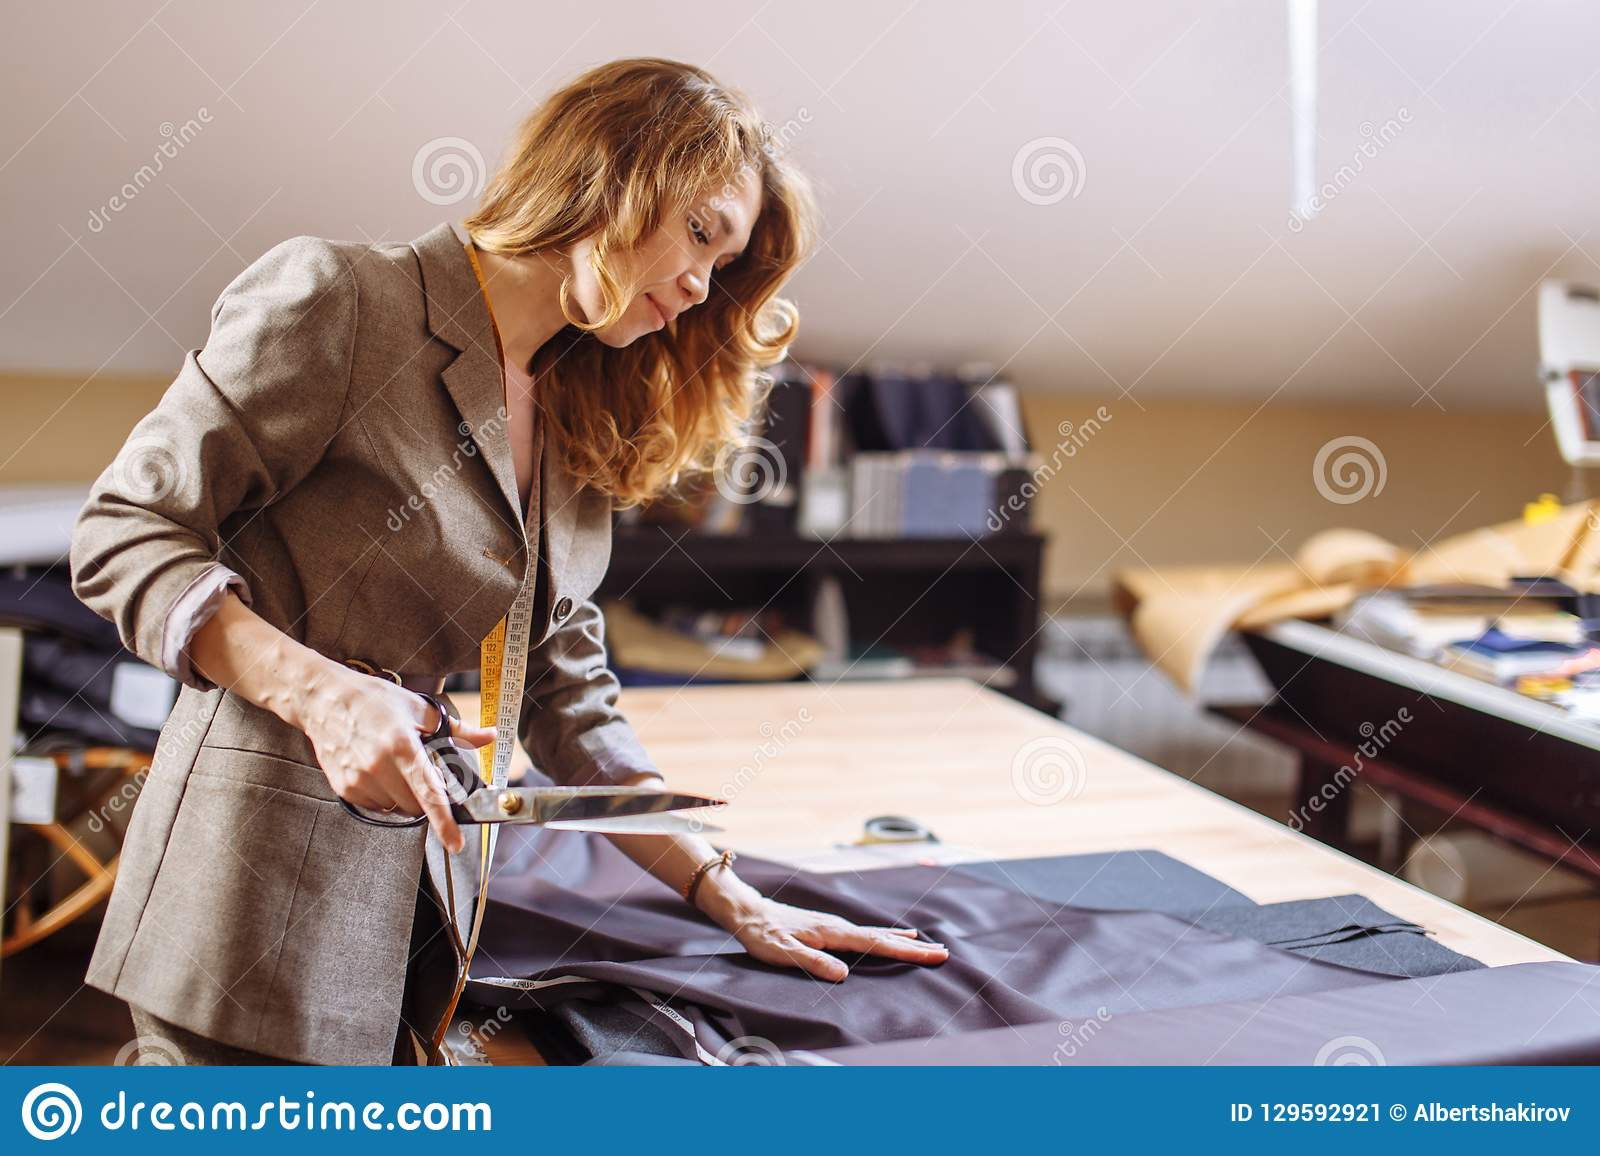 Female Fashion Designer Working On Suiting Fabric With Dressmaking Accessories On Table Stock Image Image Of Create Adult 129592921